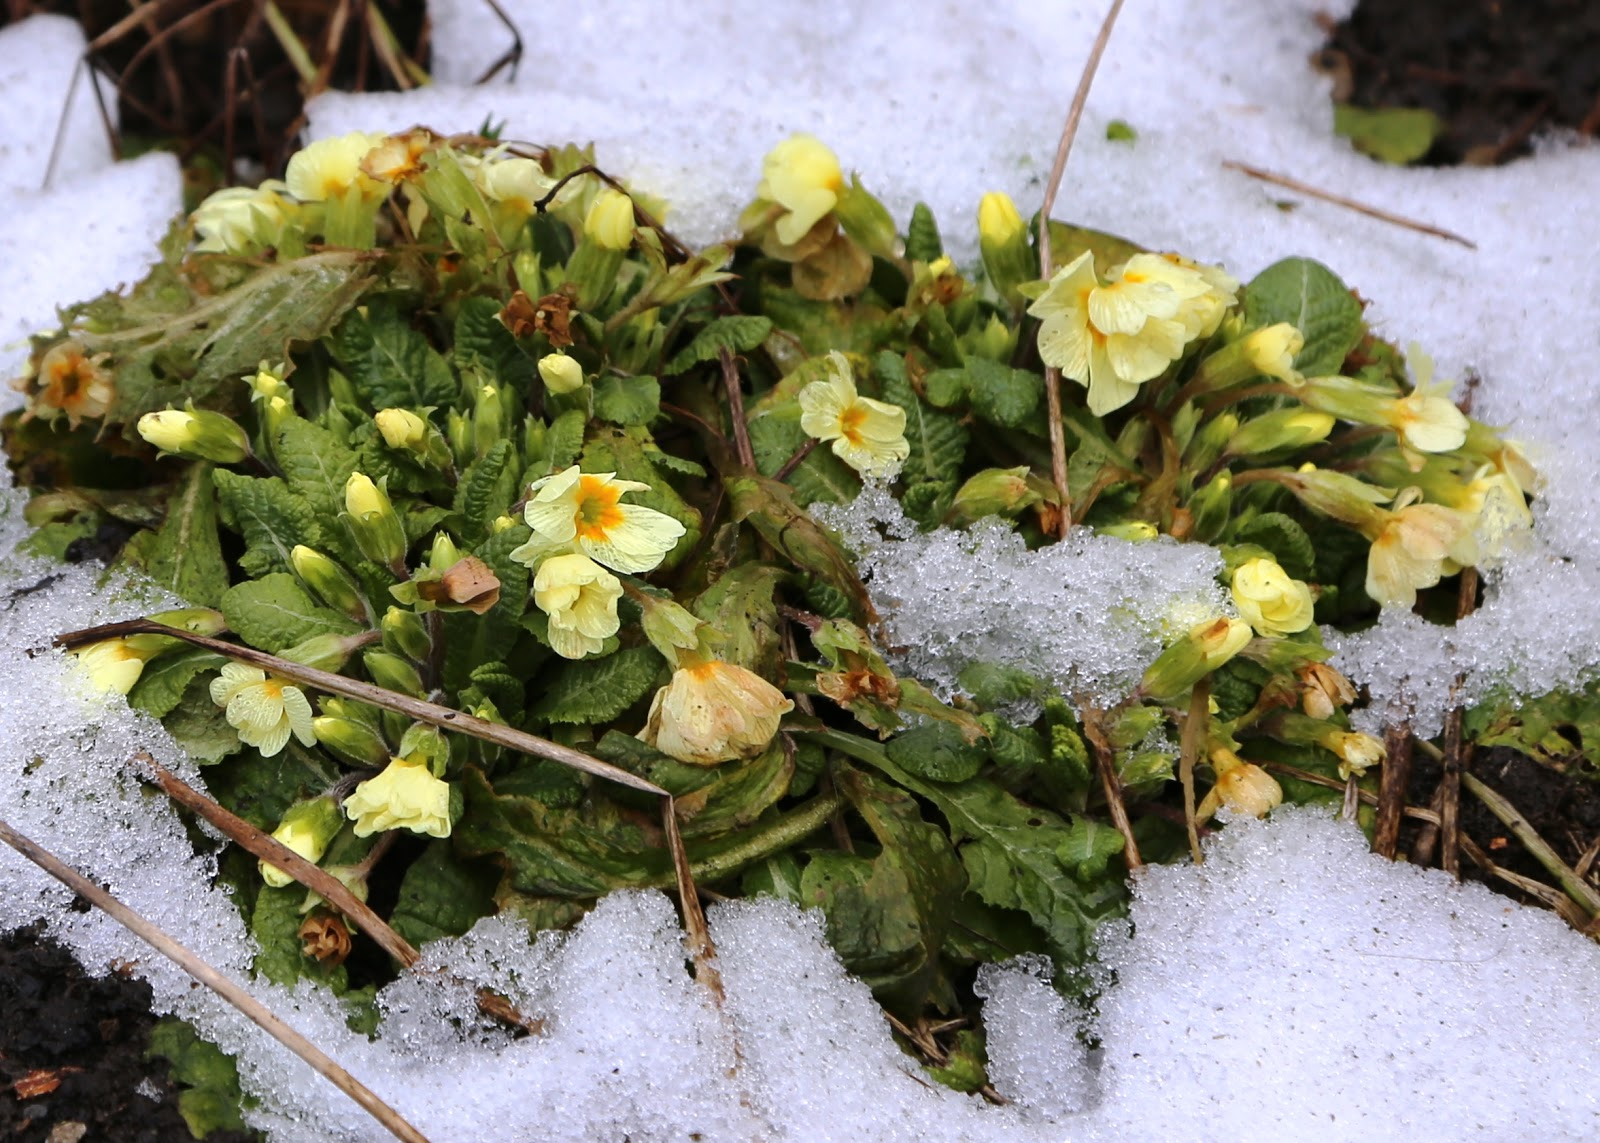 Winter Flowers Of Hardy Plants Tougher Than Humans Gardeners Word